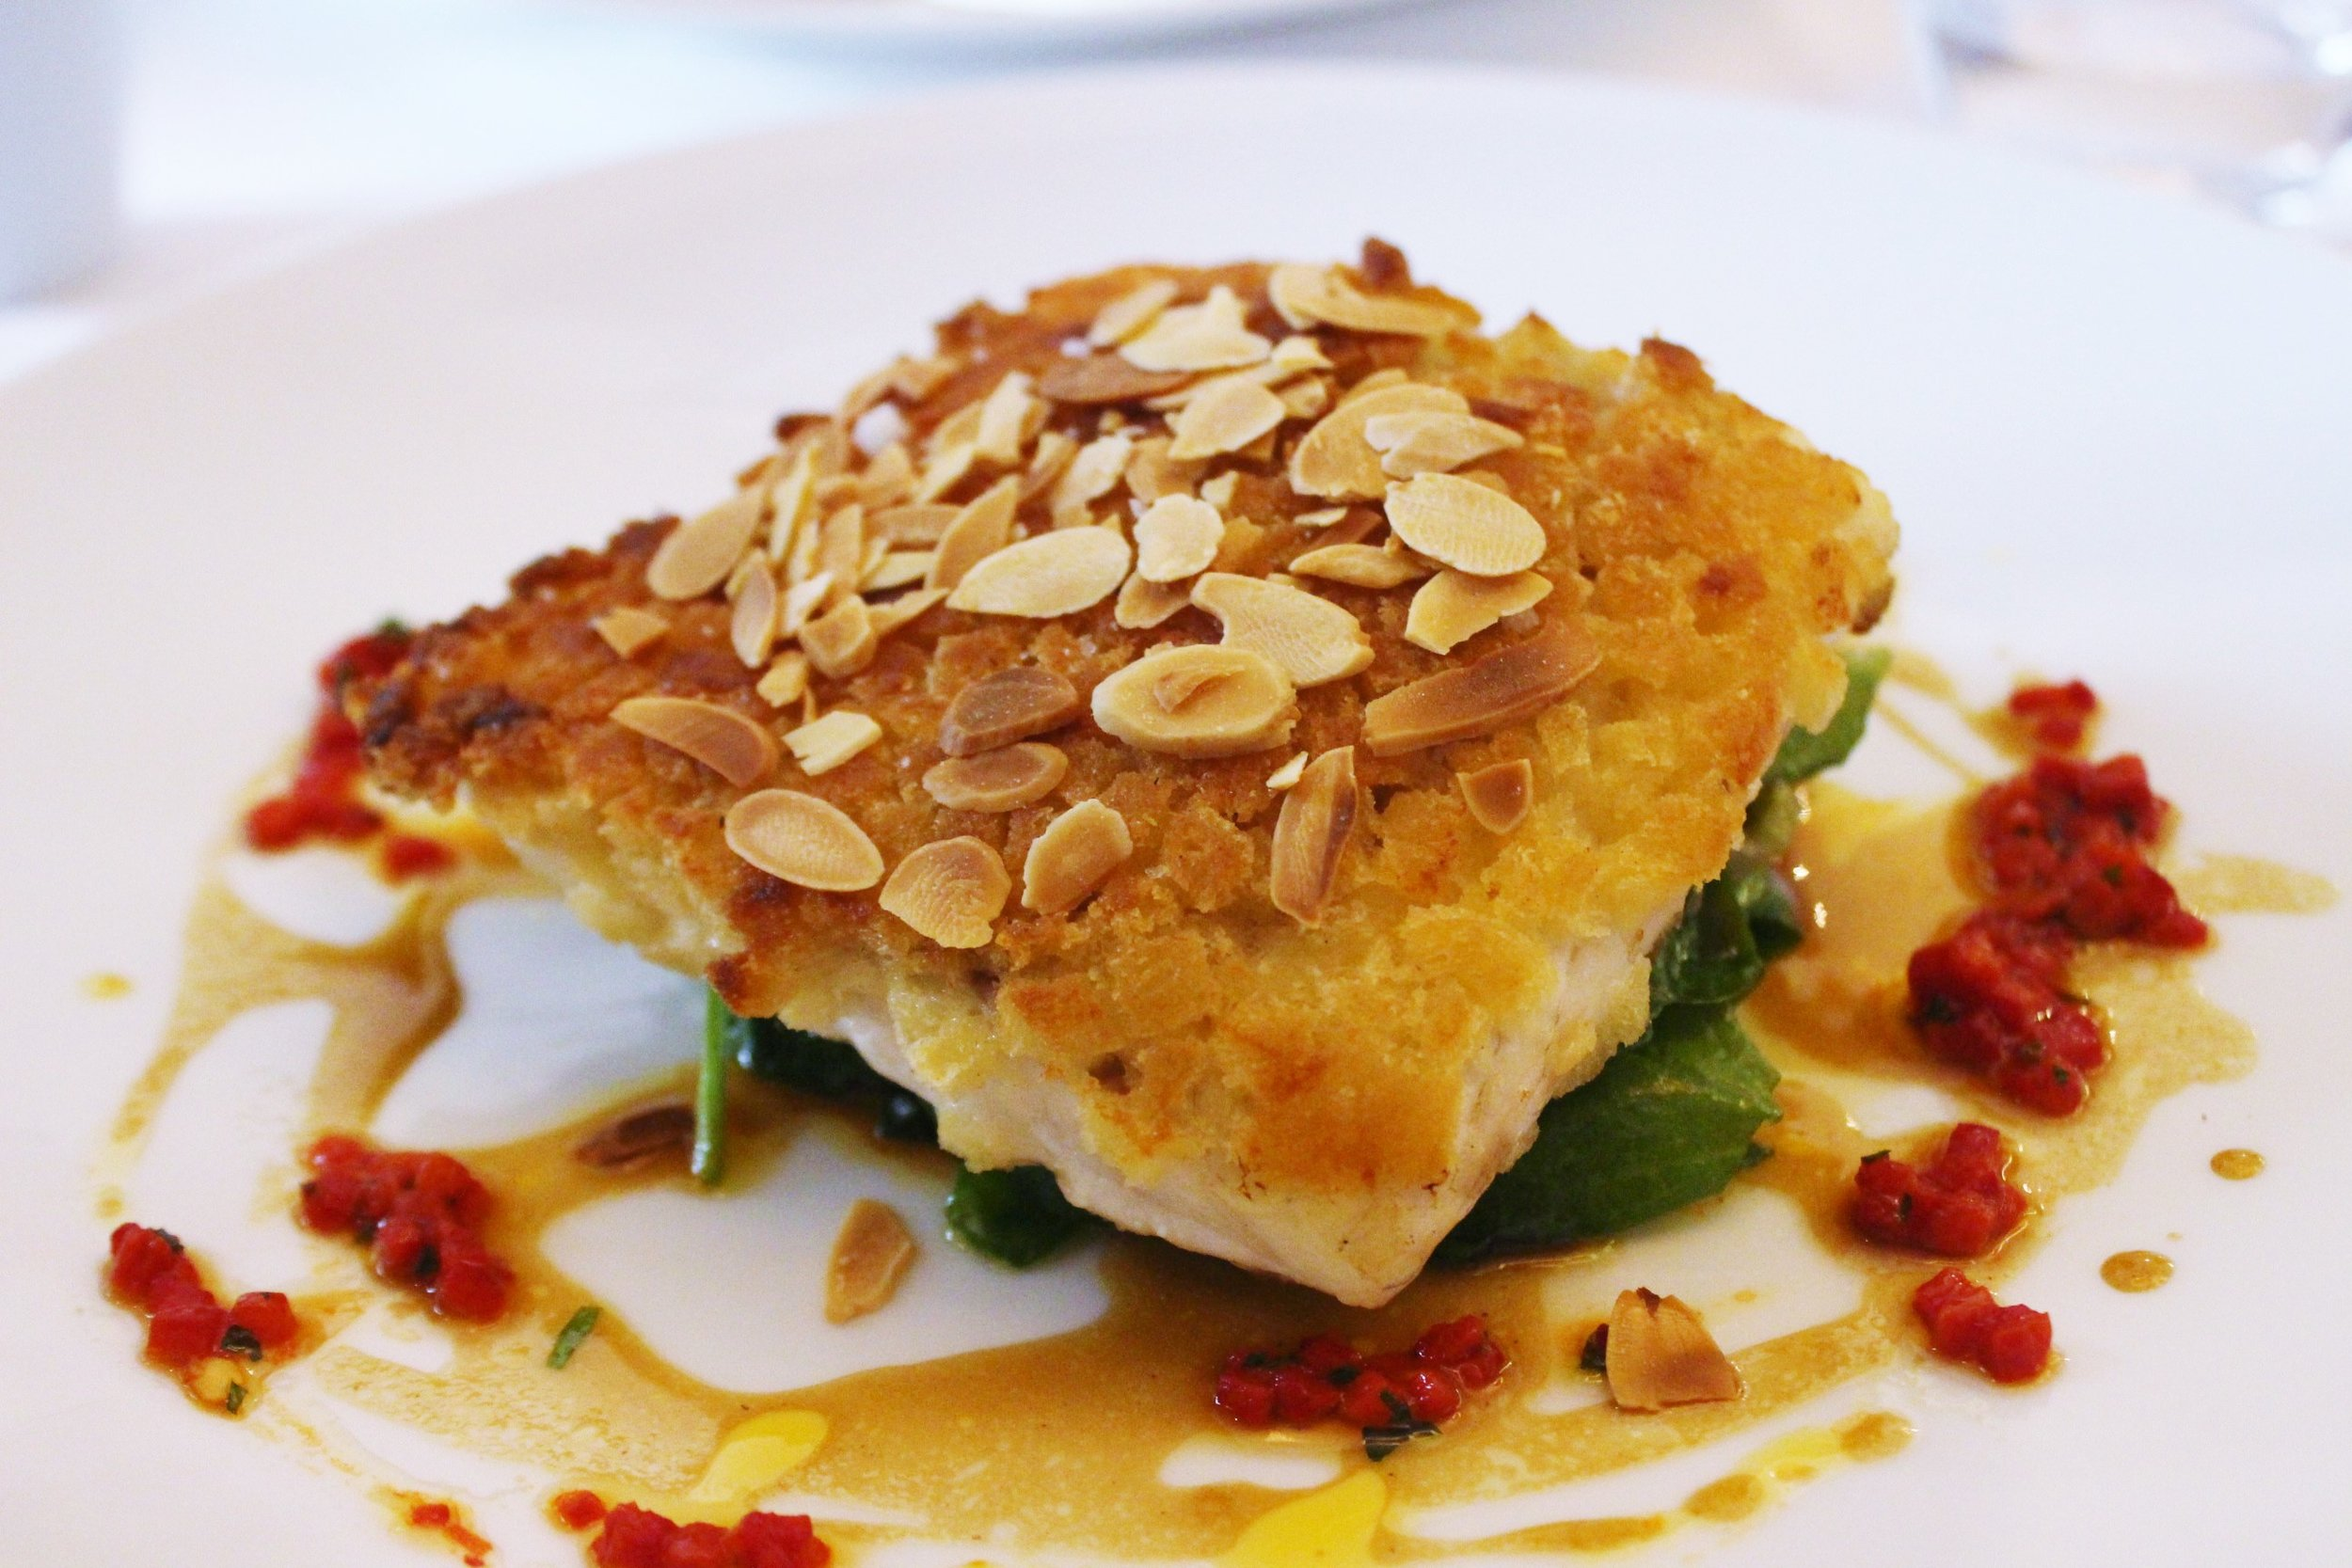 Supreme of Seabass, Crispy Almond Crust with Curried Oil and Peppers